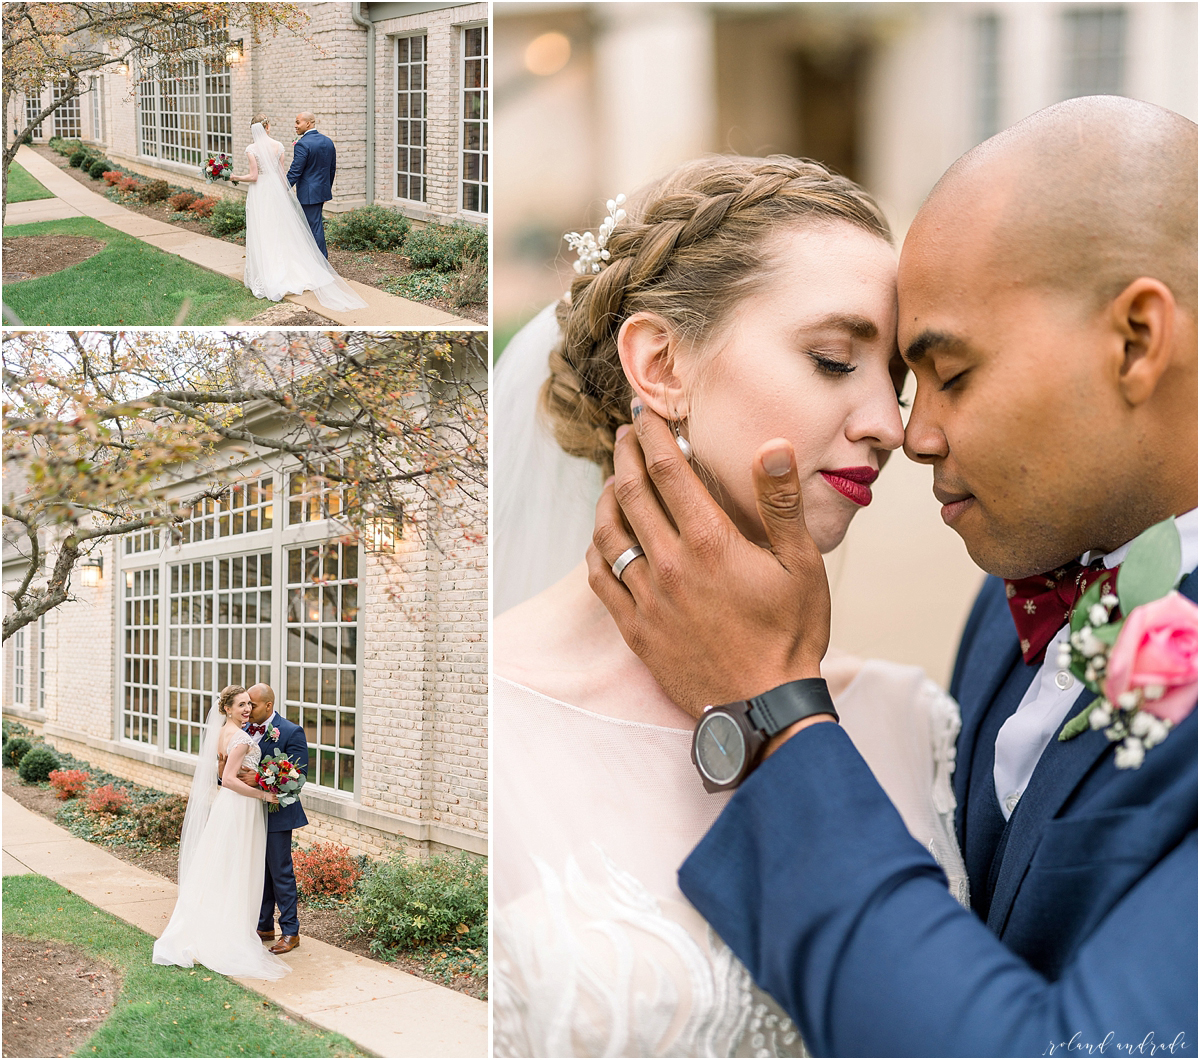 Naperville Country Club Wedding, Chicago Wedding Photographer, Naperville Wedding Photographer, Best Photographer In Aurora, Best Photographer In Chicago_0056.jpg